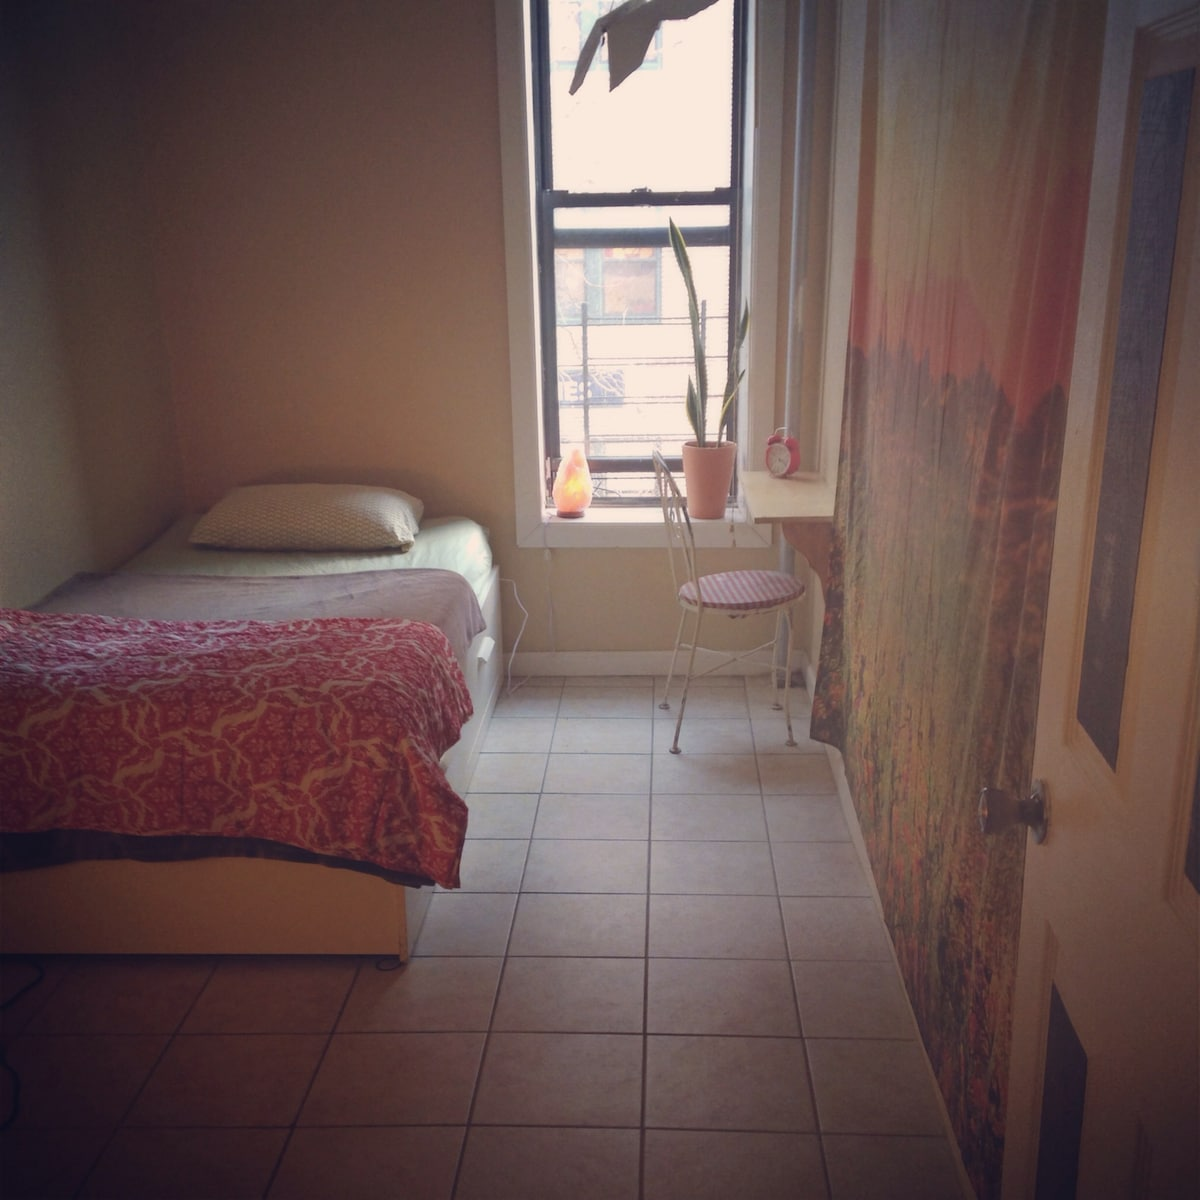 The Scarlet Room has a twin sized bed, small desk and chair, floor lamp, over-the-door clothes rack, and dresser.